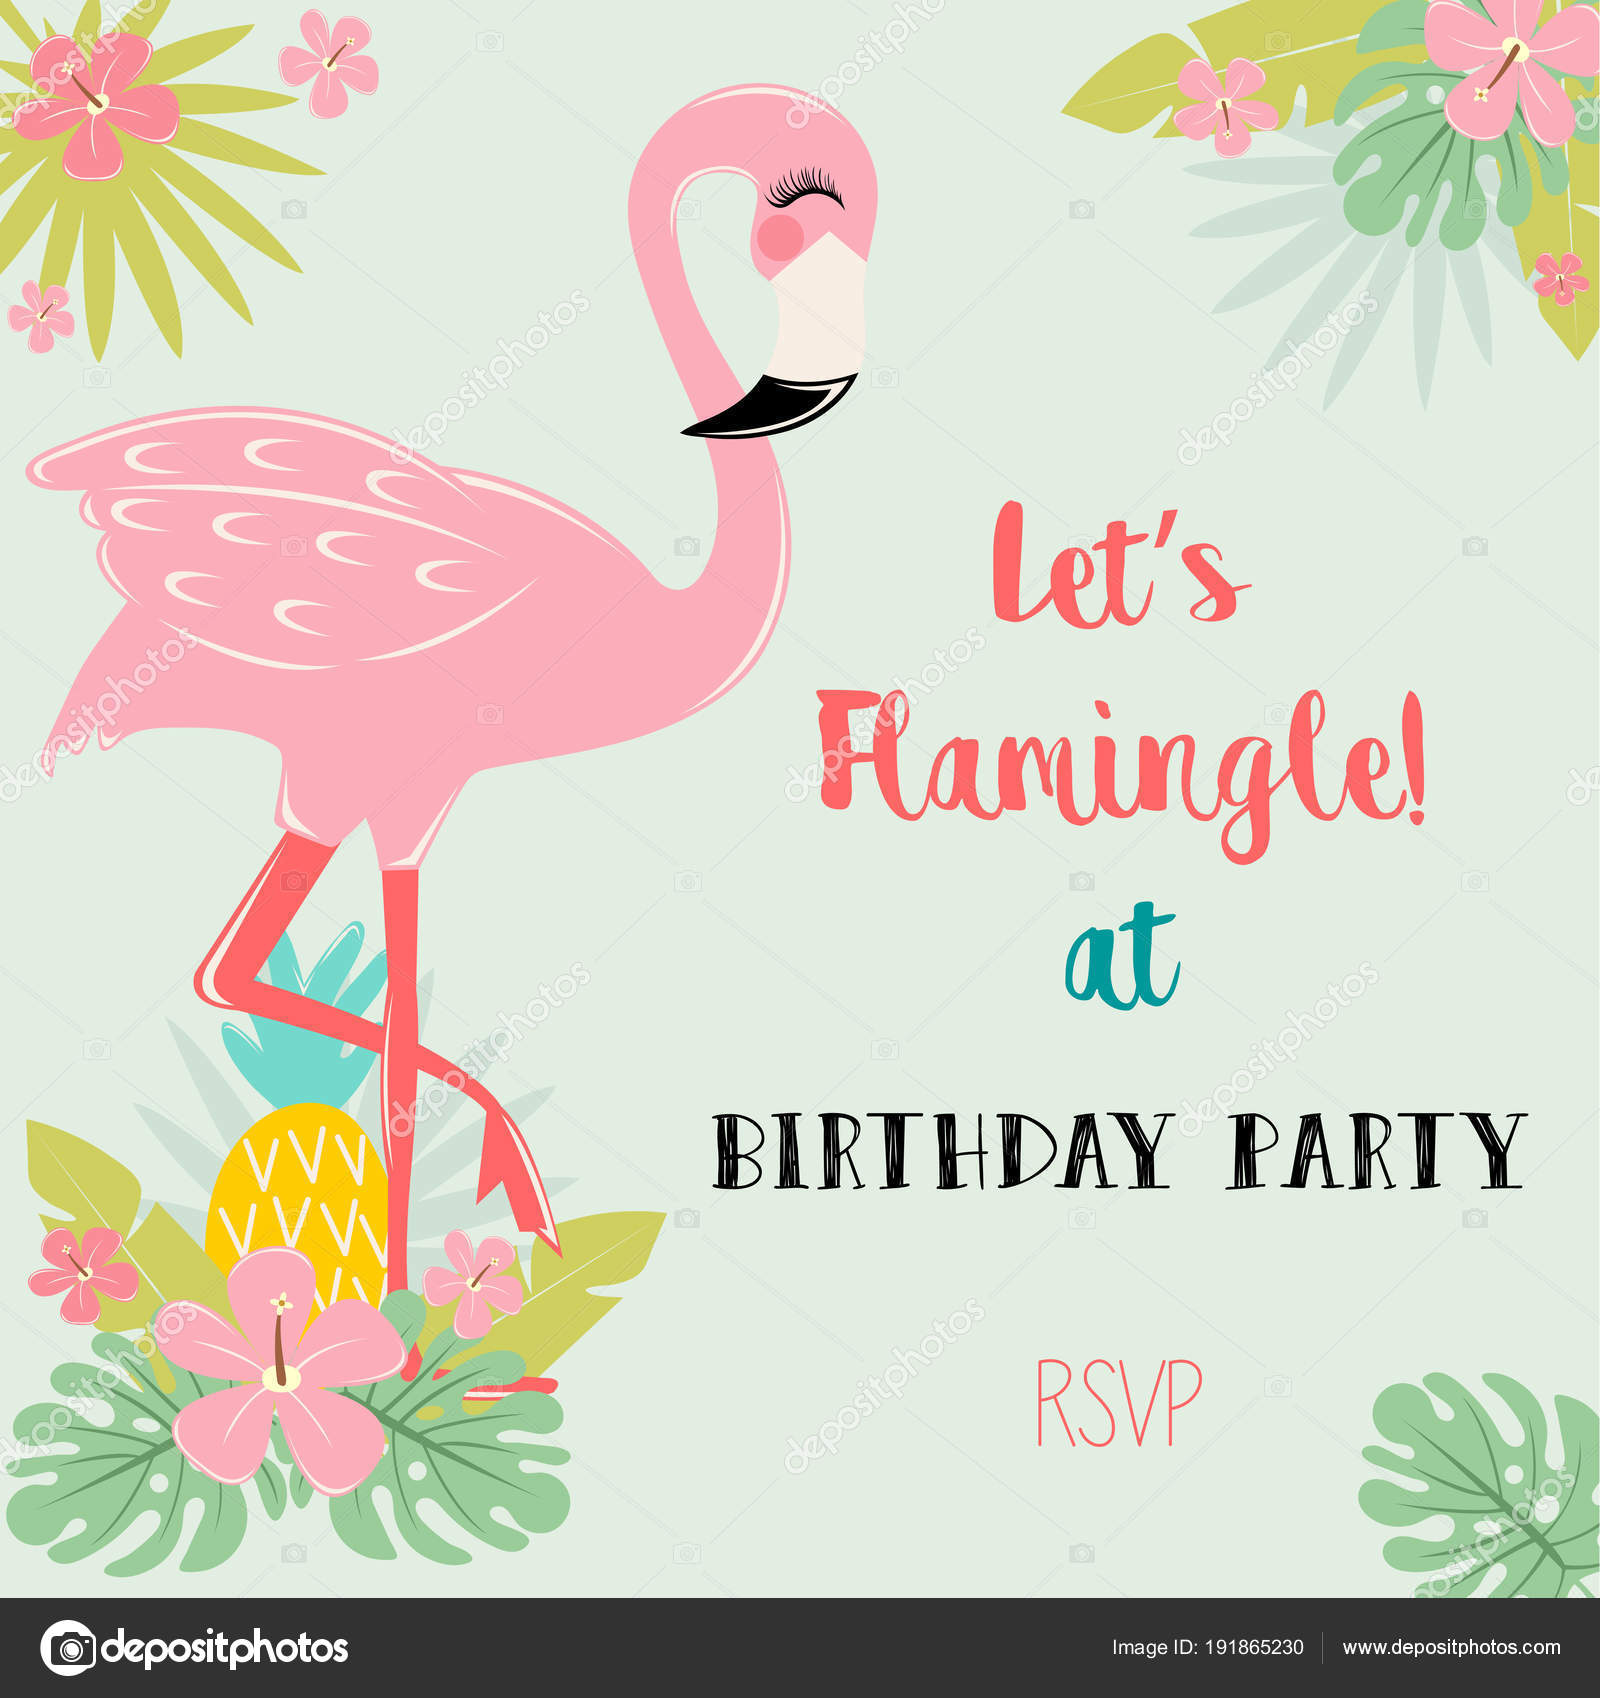 Flamingo Birthday Party Invitation Card — Stock Vector ...